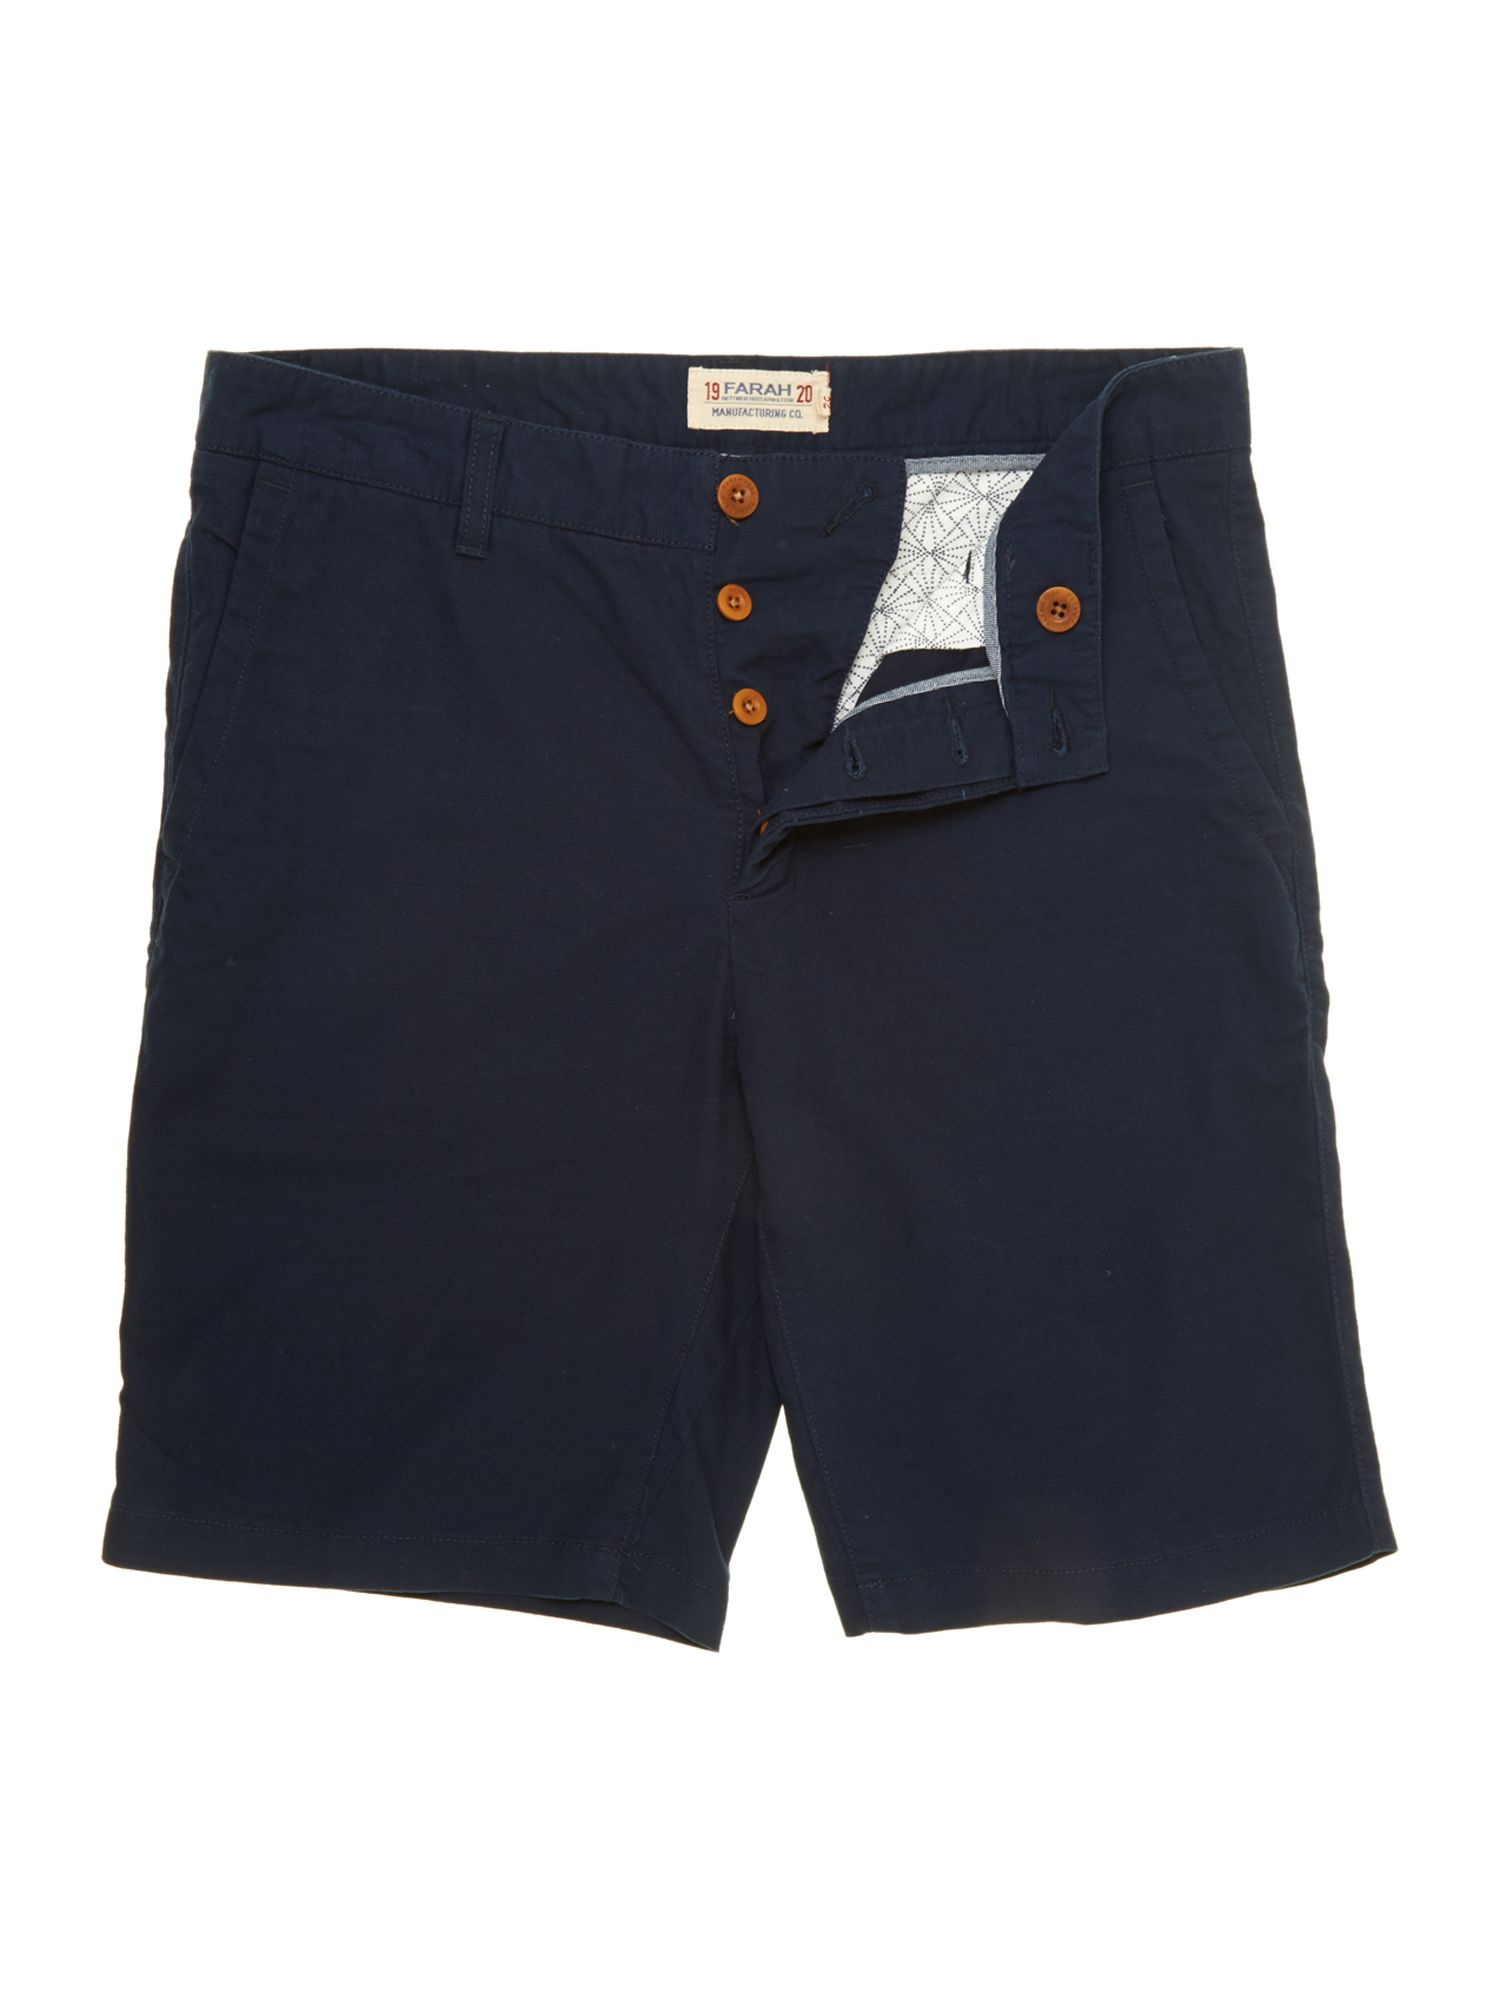 Wellman chino shorts